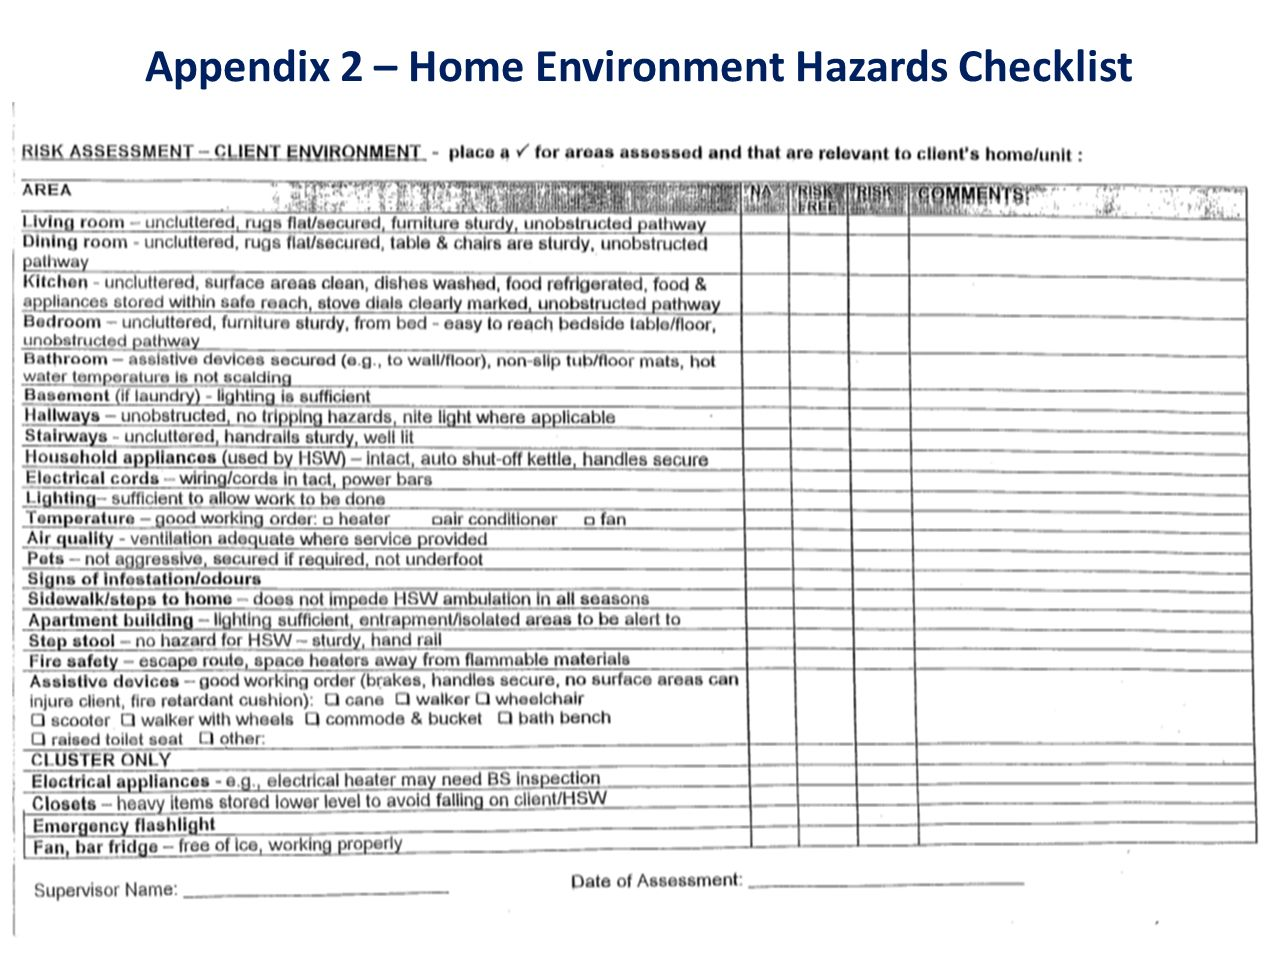 Appendix 2 – Home Environment Hazards Checklist